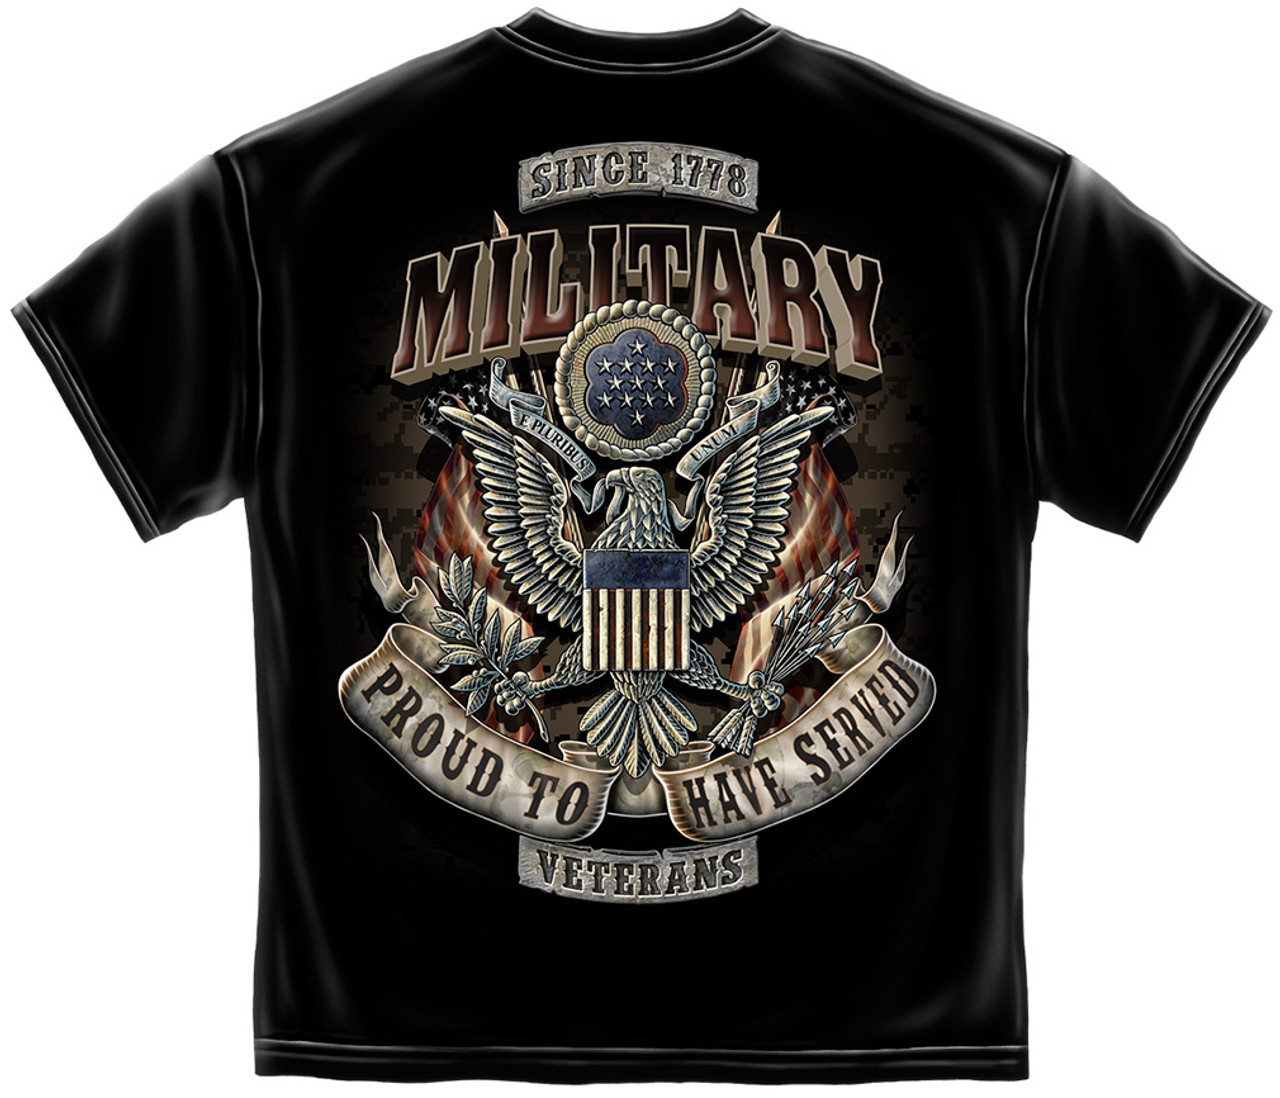 **(OFFICIALLY-LICENSED-MILITARY-VETERANS & PROUD-TO-HAVE-SERVED,SINCE-1778/NICE-CUSTOM-DETAILED-GRAPHIC-PRINTED/PREMIUM-DOUBLE-SIDED-LICENSED-TEES:)**